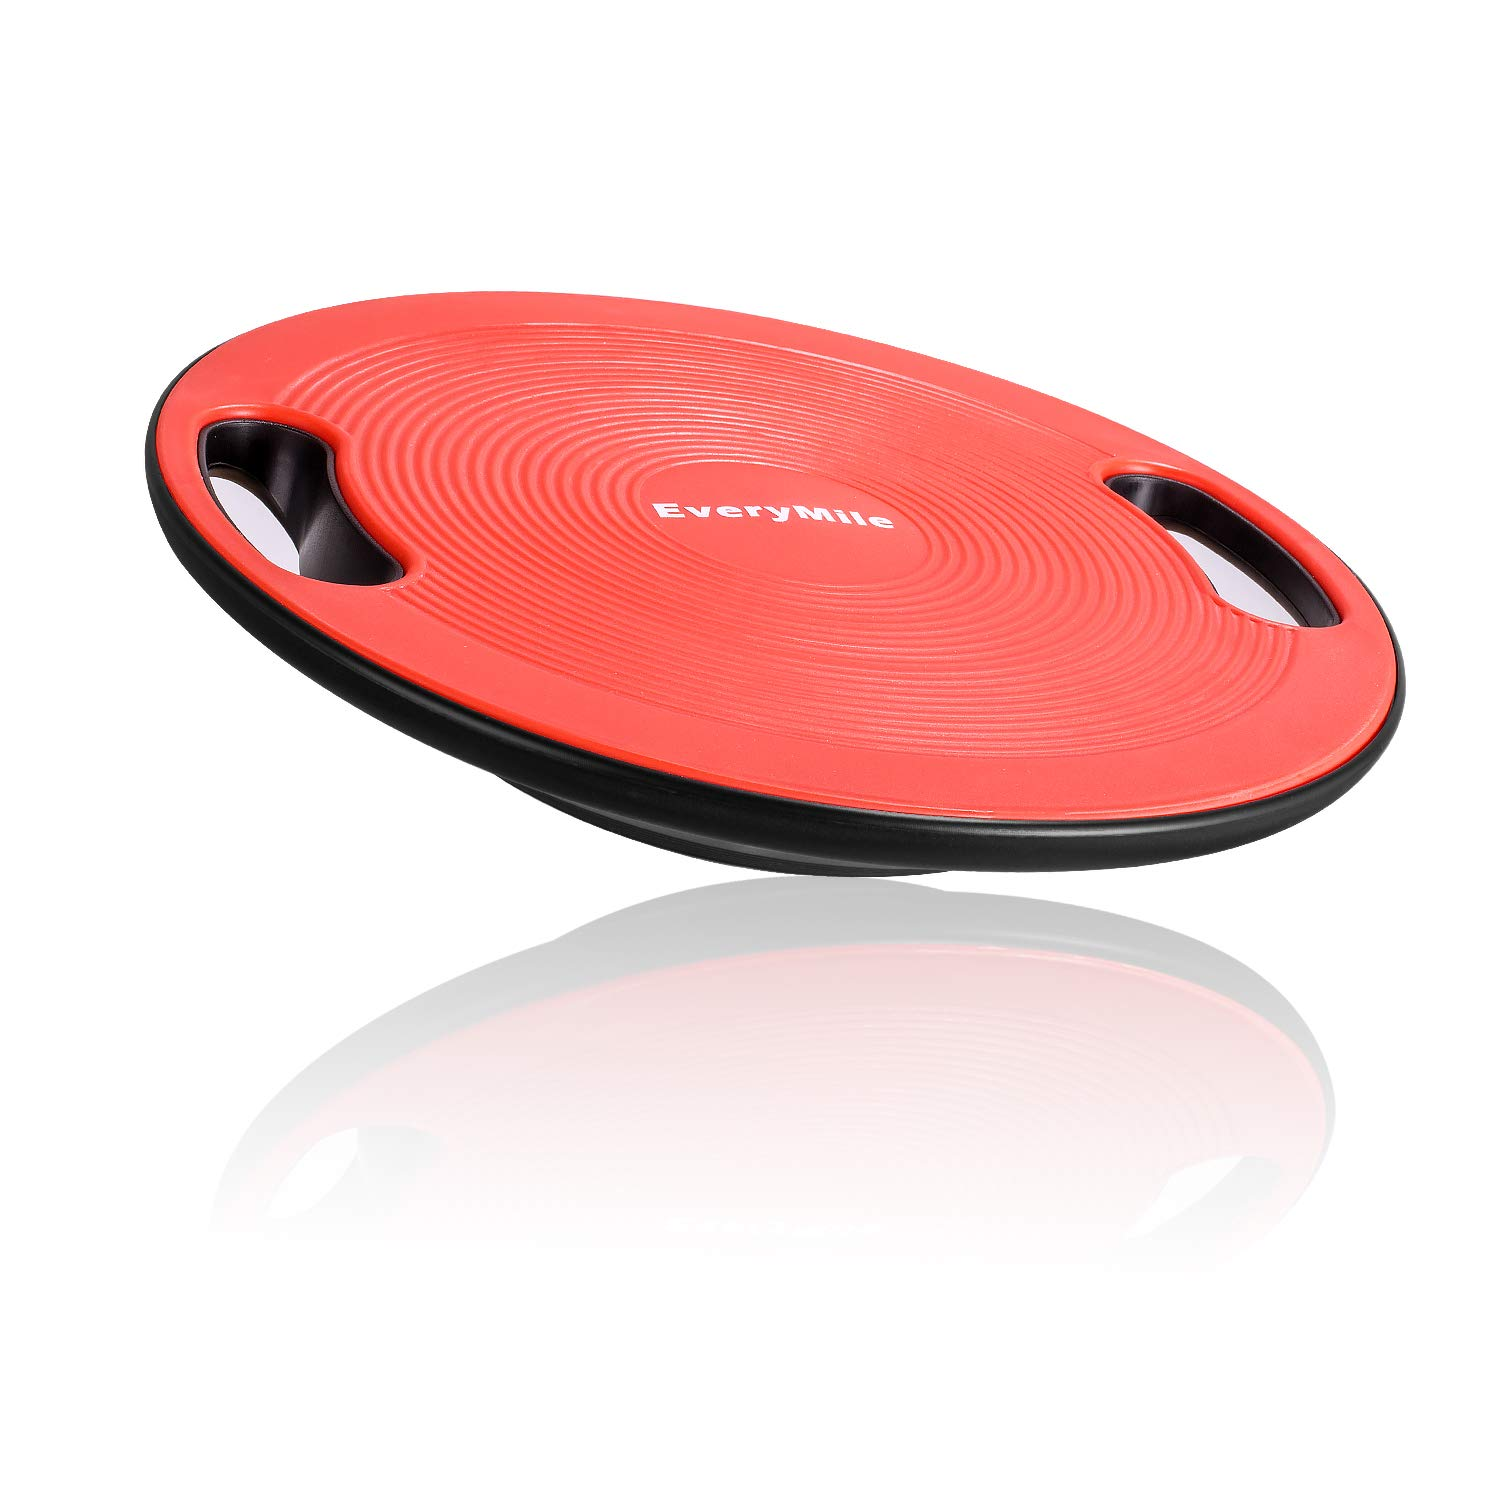 EveryMile Wobble Balance Board, Exercise Balance Stability Trainer Portable Balance Board with Handle for Workout Core…